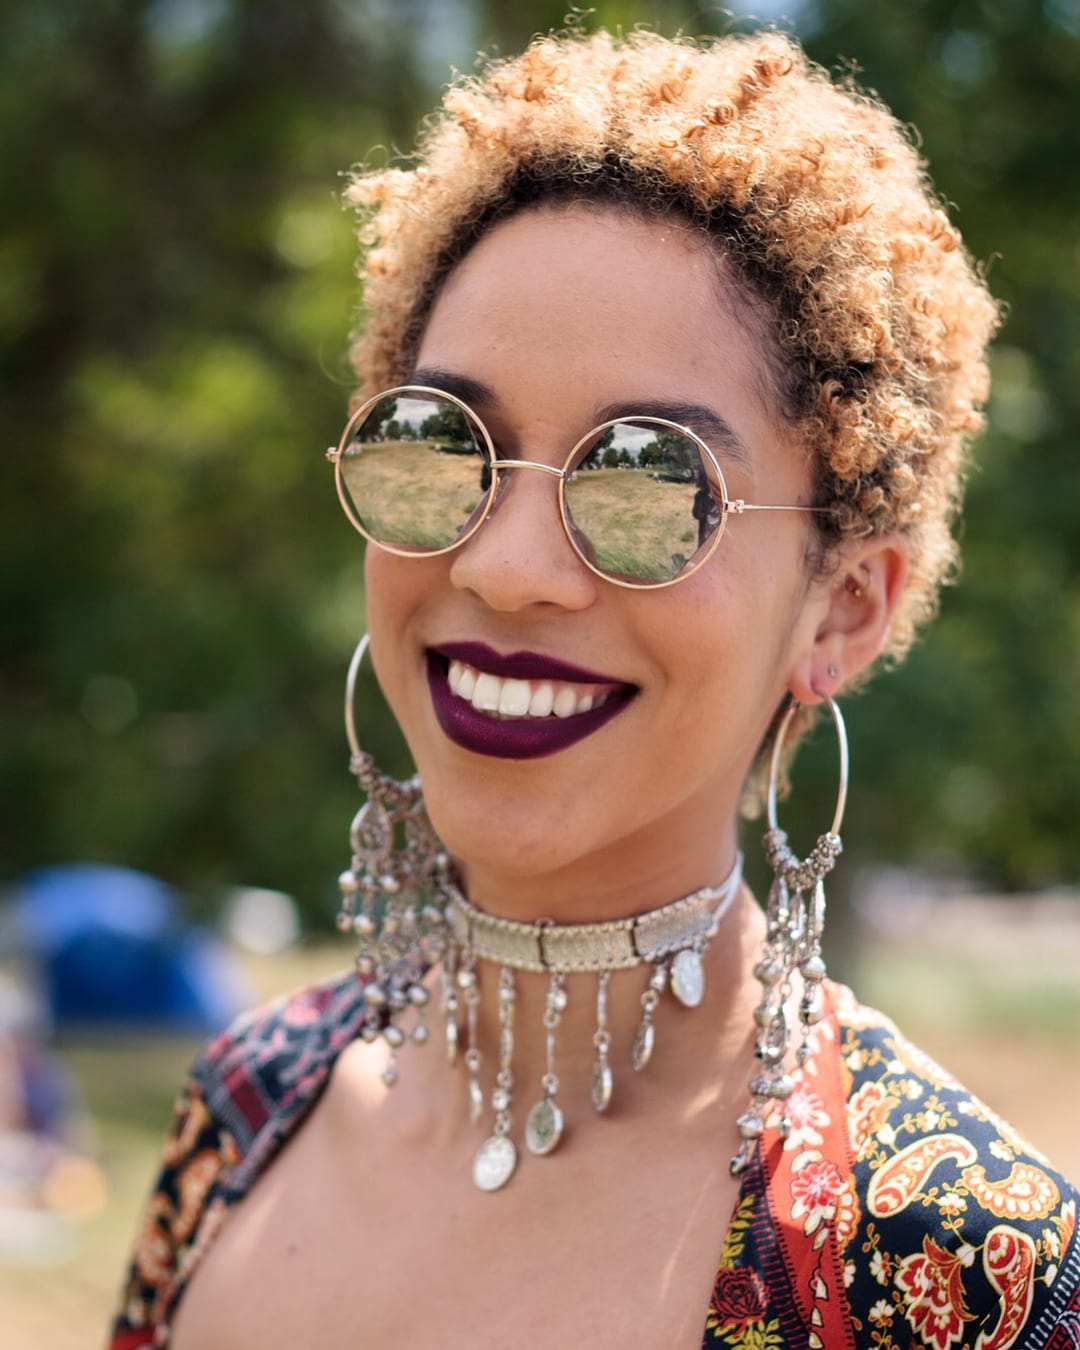 Boho Chic Curly Pixie Fro with Copper Color and Shadow Roots Short Summer Hairstyle